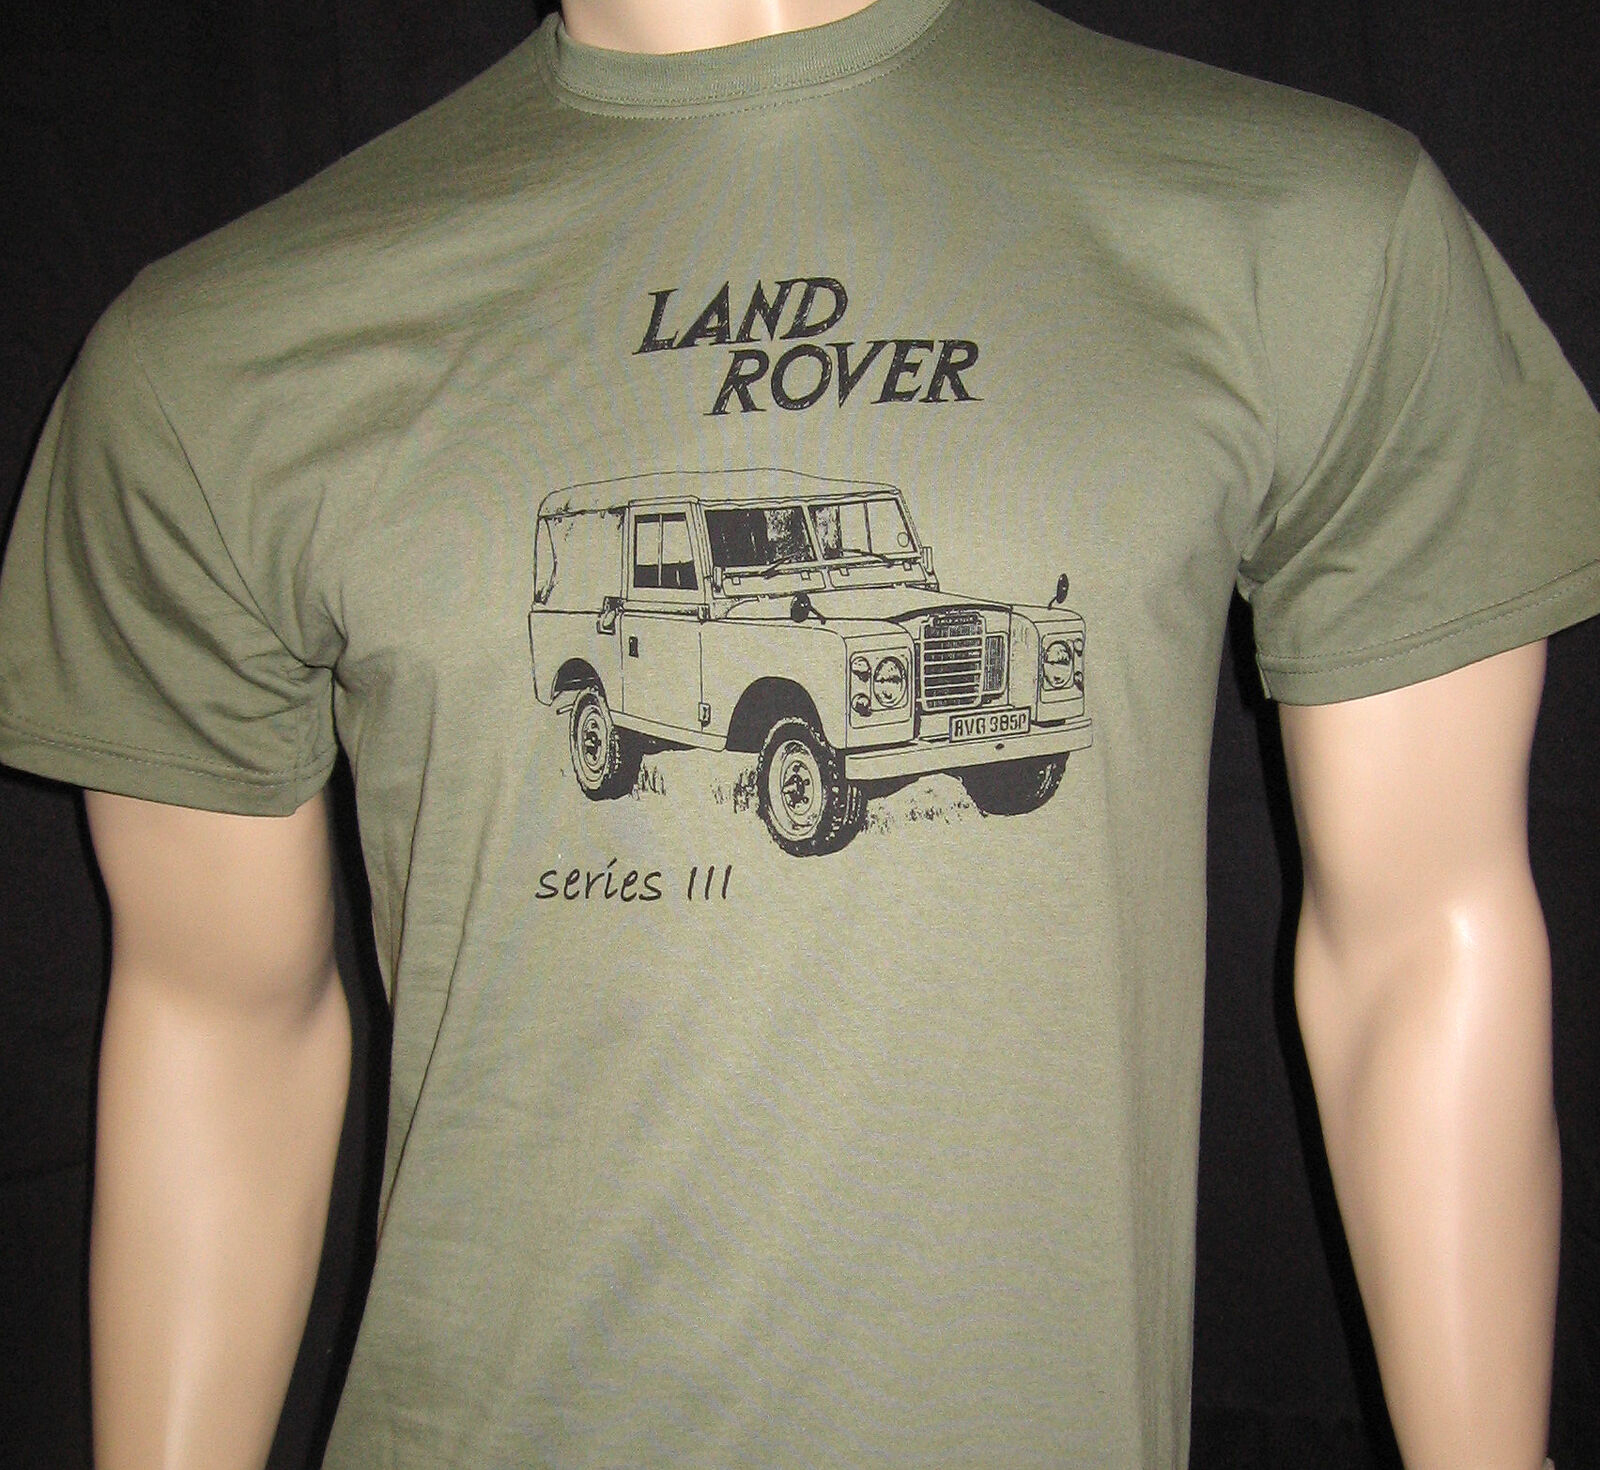 Land Harajuku Shirt For Men Rover Series 3 T Shirt 5 Sizes In Olive Green Or Khaki